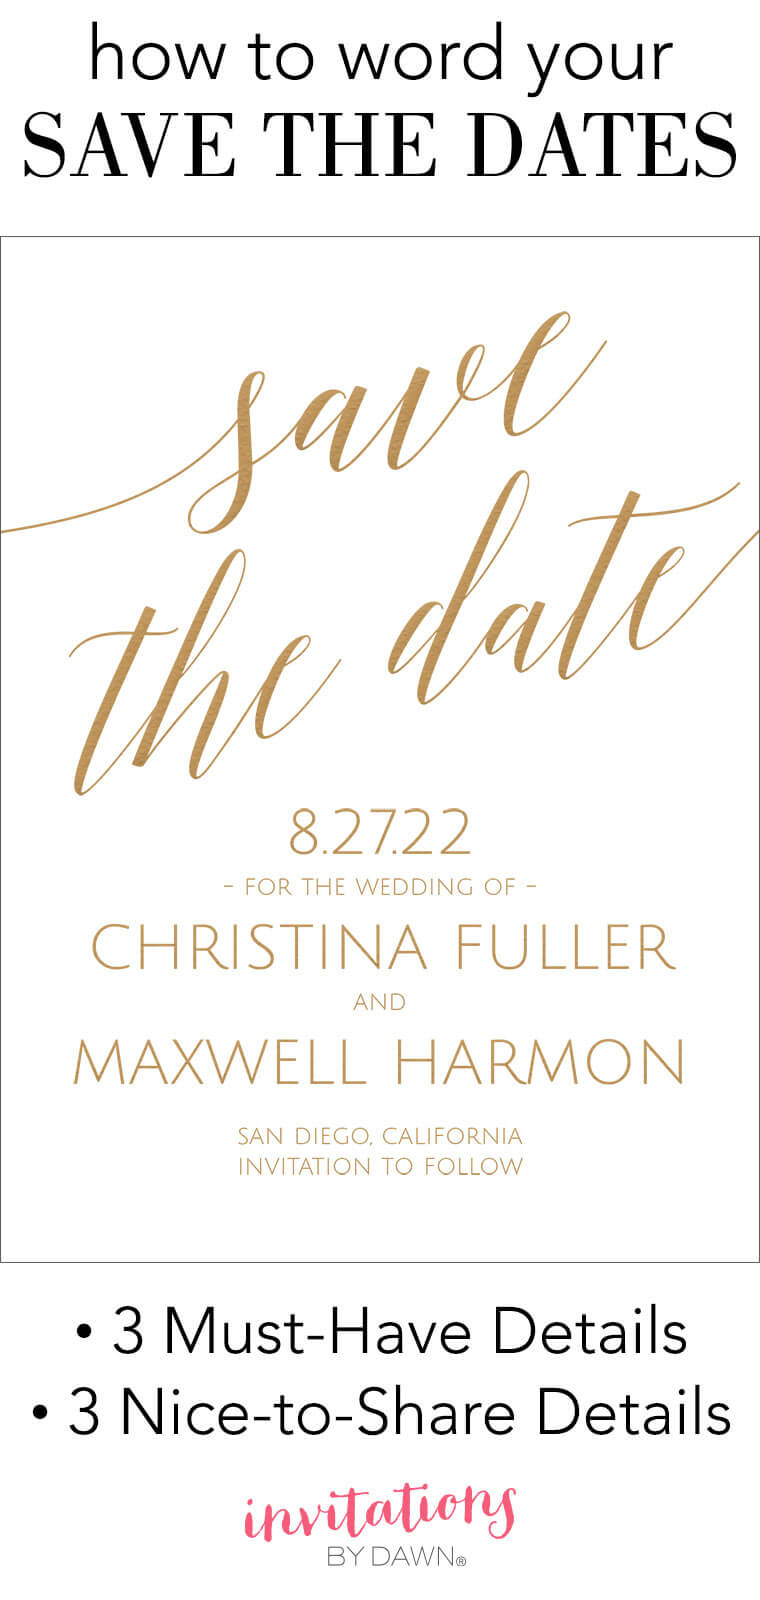 Save The Date Wording | Invitationsdawn Intended For Save The Date Template Word